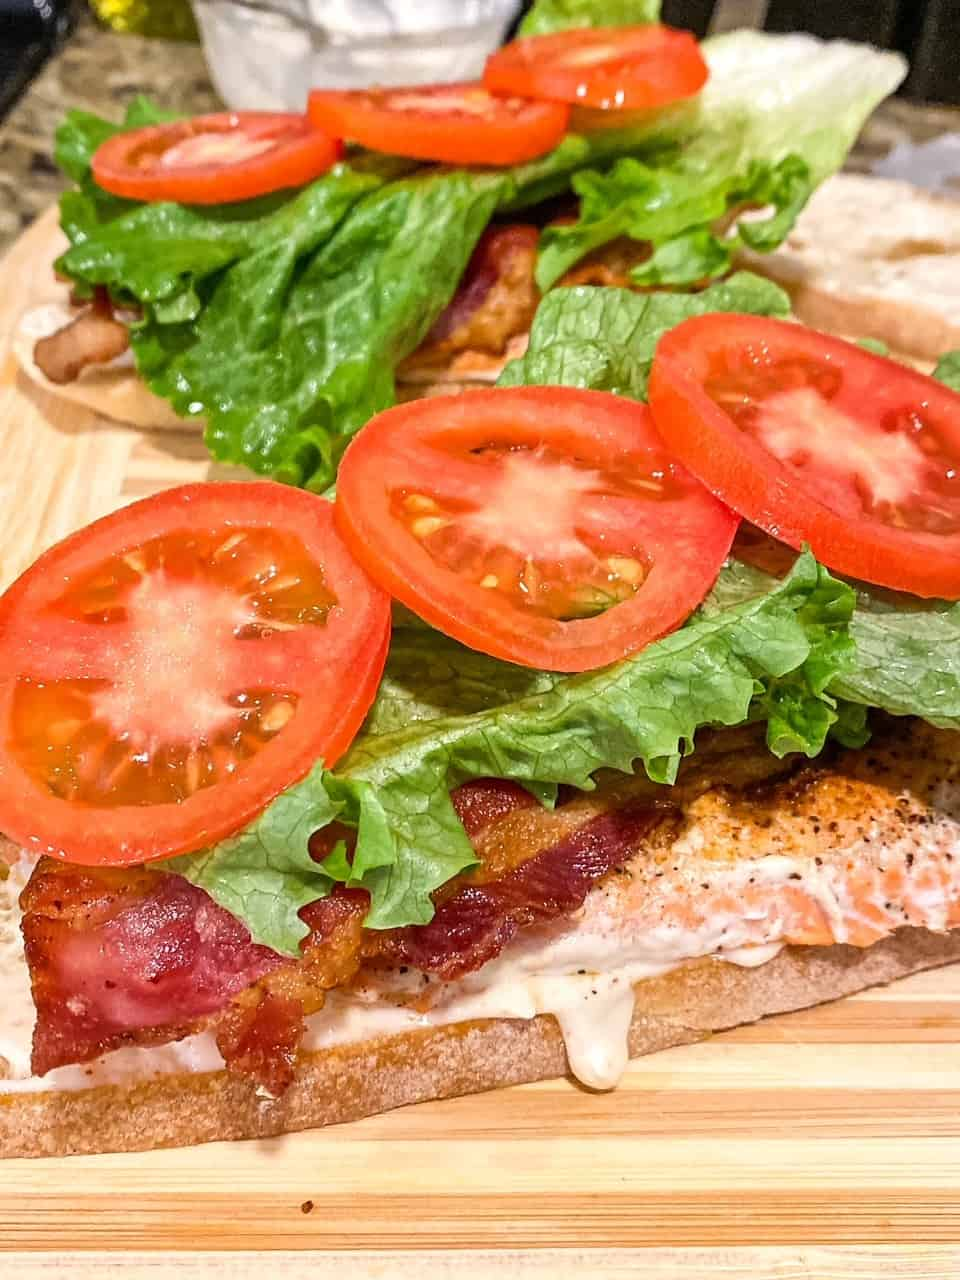 piece of bread with salmon, bacon, lettuce, and tomato on it to make a salmon BLT